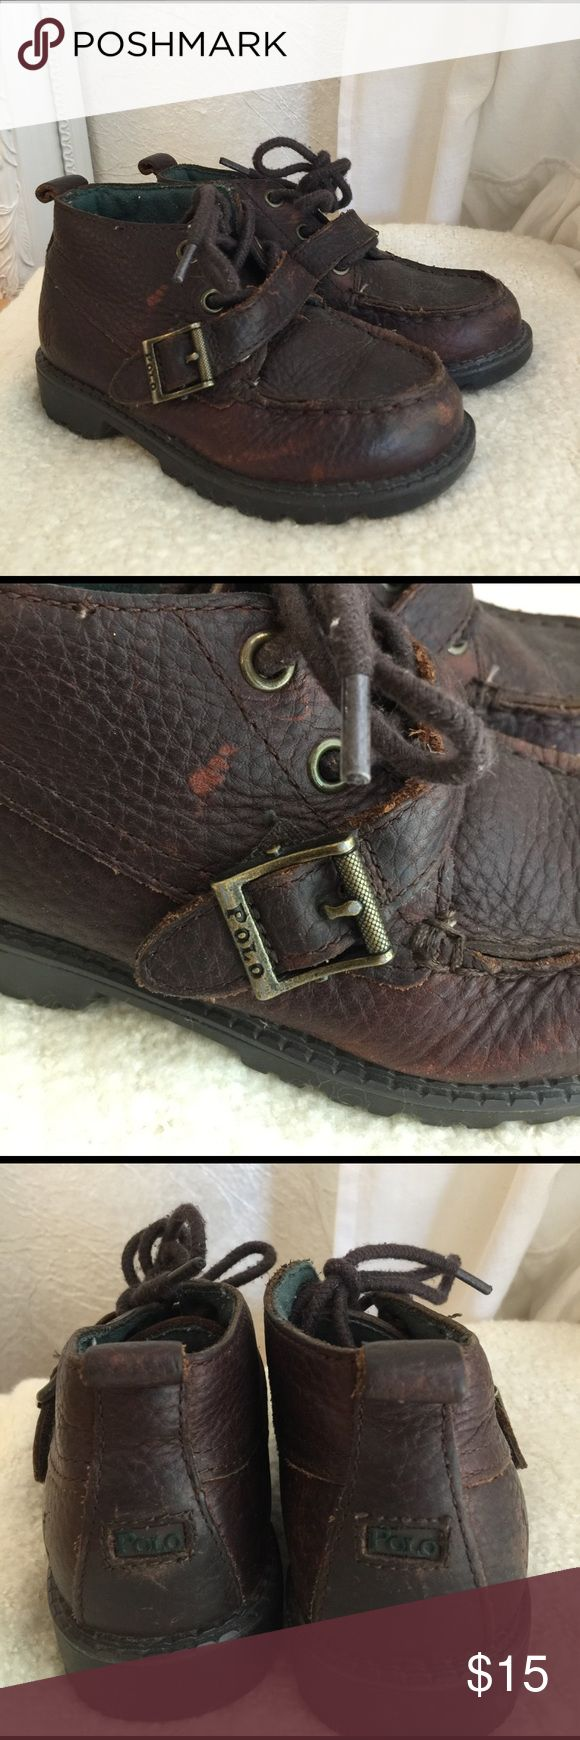 Polo By Ralph Lauren Boys distressed hiking boots Polo by Ralph Lauren Boys Distressed leather hiking boots size 9.5 Polo by Ralph Lauren Shoes Boots